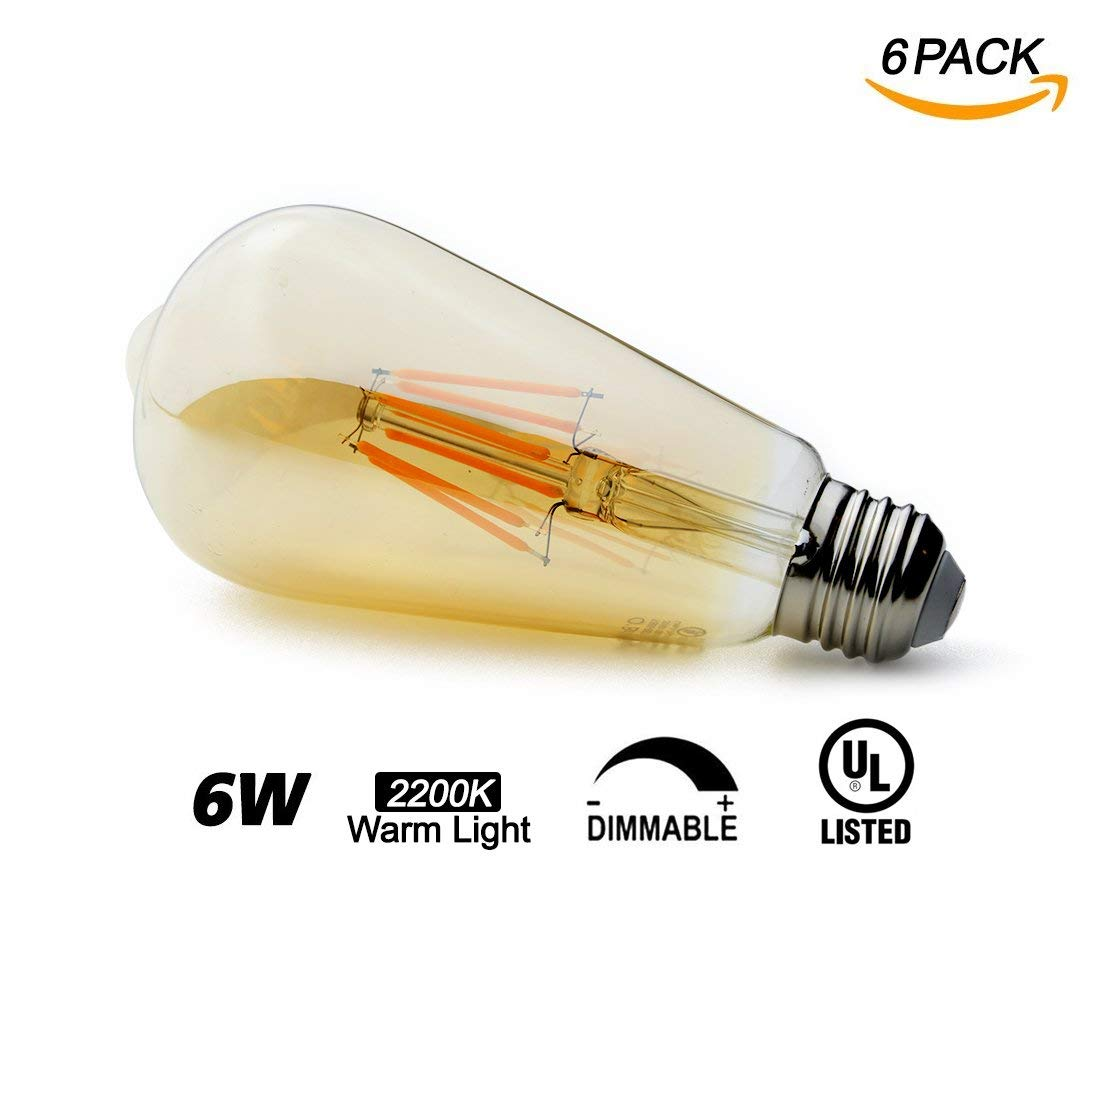 O'Bright Dimmable LED Edison Light Bulbs, 6W, Dimmable, ST21/ST64 Vintage Light Bulb, E26, 2200K (Warm Light), Vintage LED Bulb/Decorative Light Bulbs, Amber Glass, UL Listed, 6 Pack